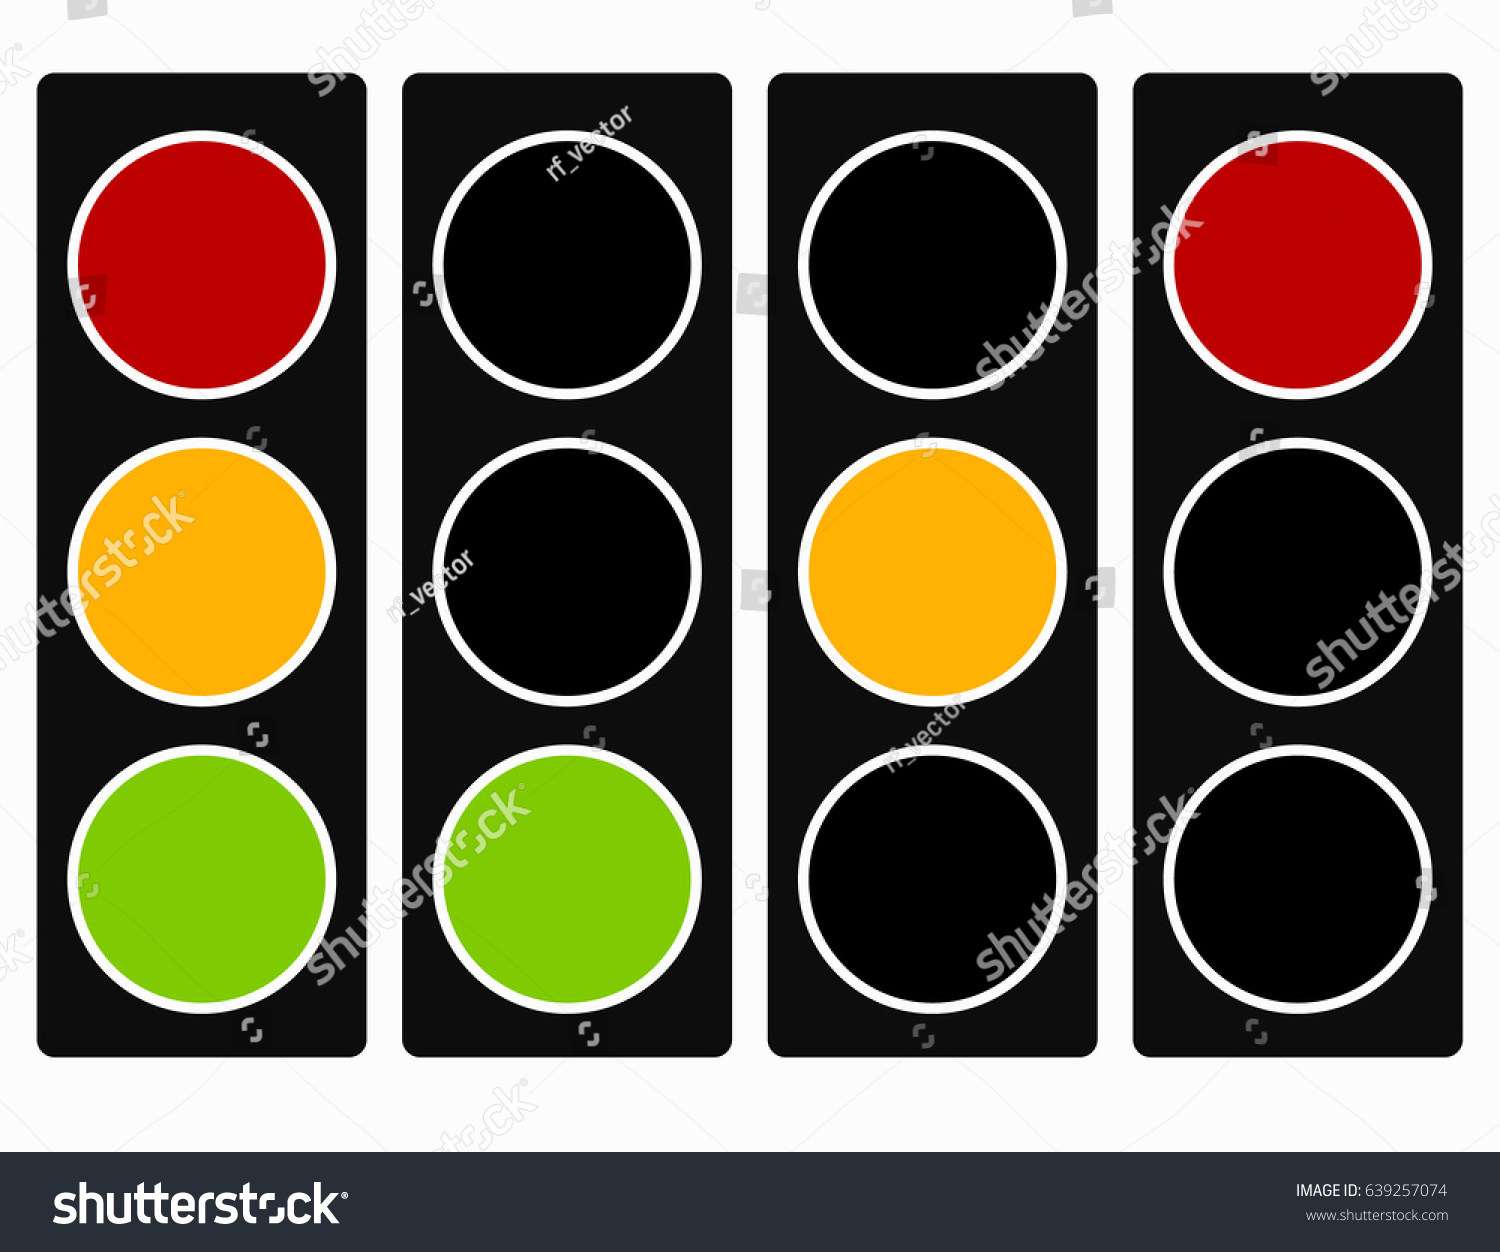 Traffic Light Traffic Lamp Icon Set Stock Vector 639257074 ... for Traffic Light Yellow Icon  173lyp